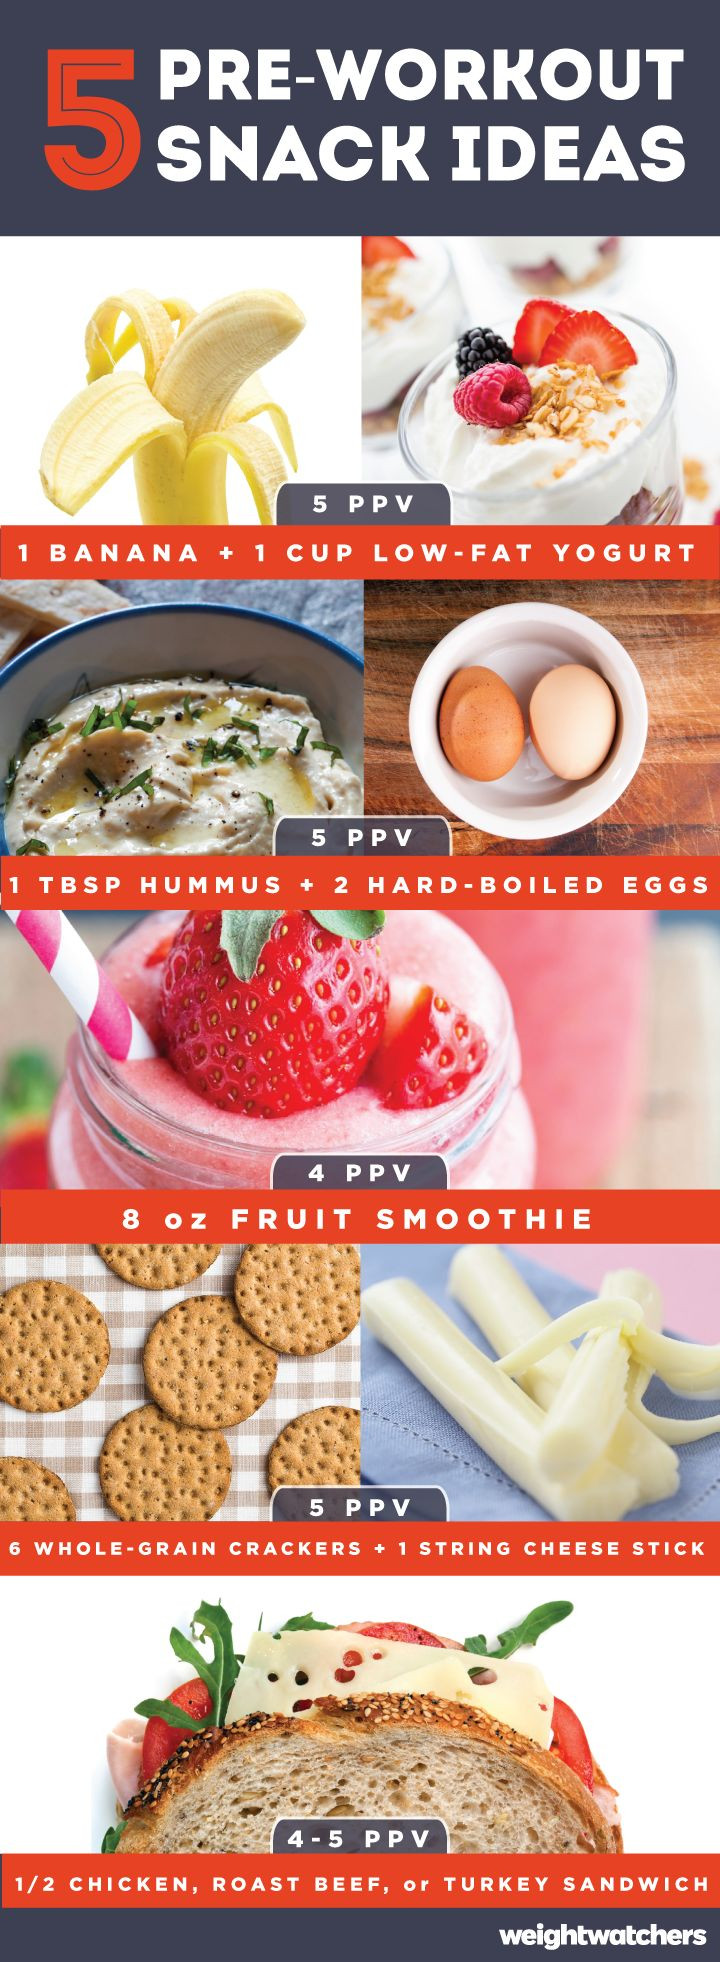 Healthy Workout Snacks  Best 25 Pre workout snack ideas on Pinterest